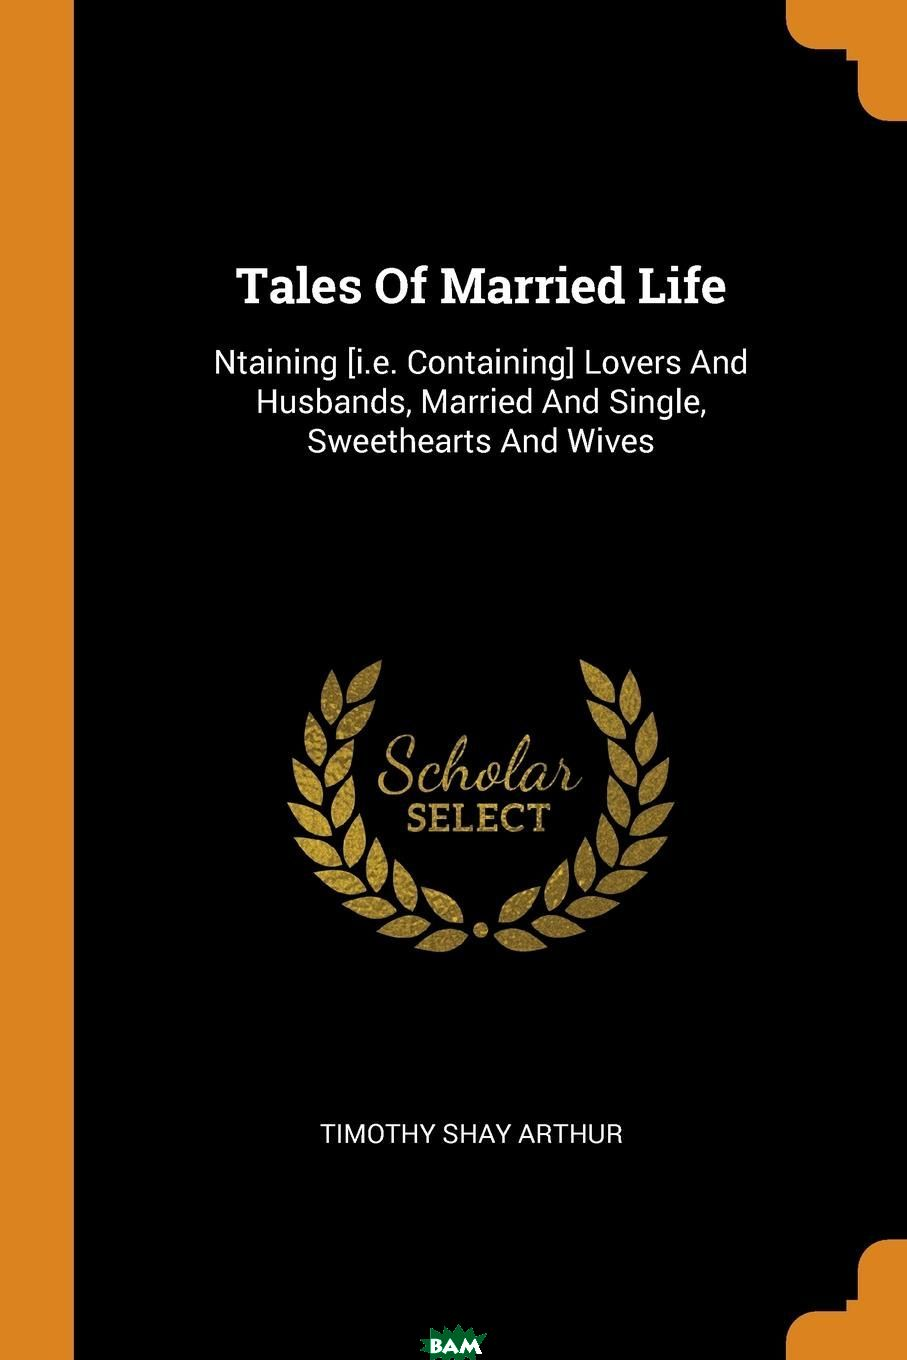 Купить Tales Of Married Life. Ntaining .i.e. Containing. Lovers And Husbands, Married And Single, Sweethearts And Wives, Timothy Shay Arthur, 9780353526501